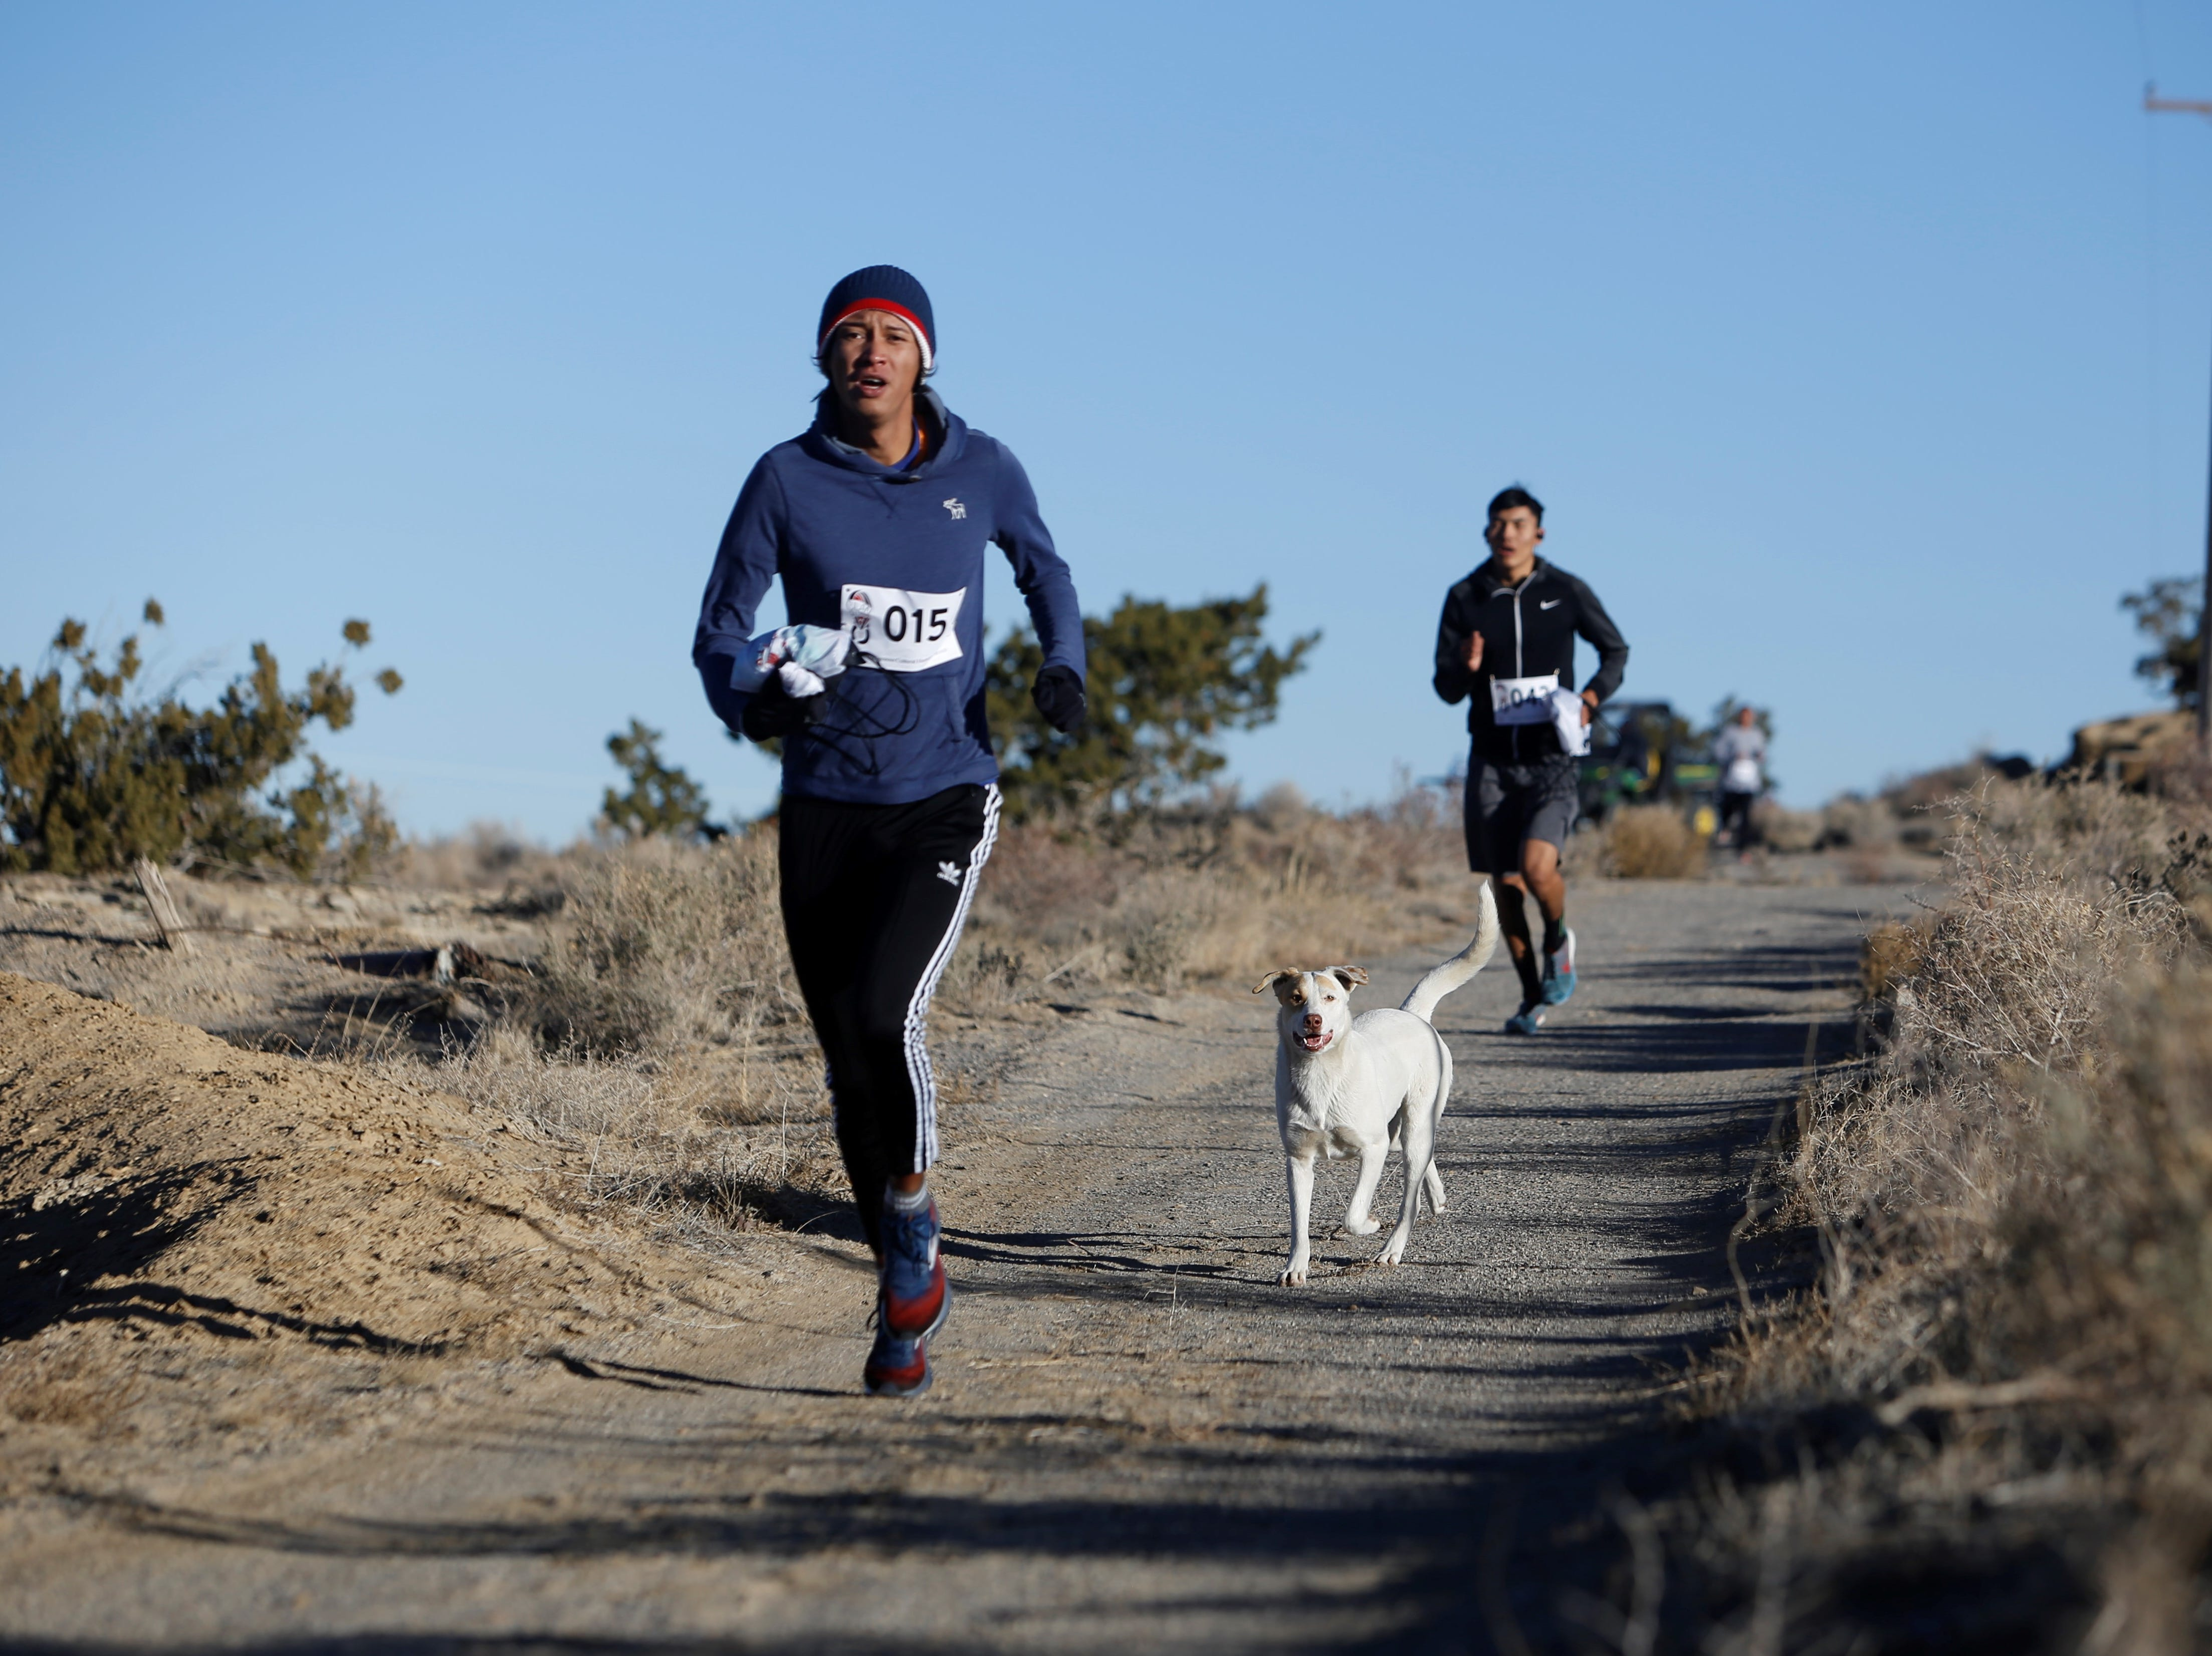 Runners complete the course for the Clan Run on Monday at Navajo Technical University in Crownpoint.